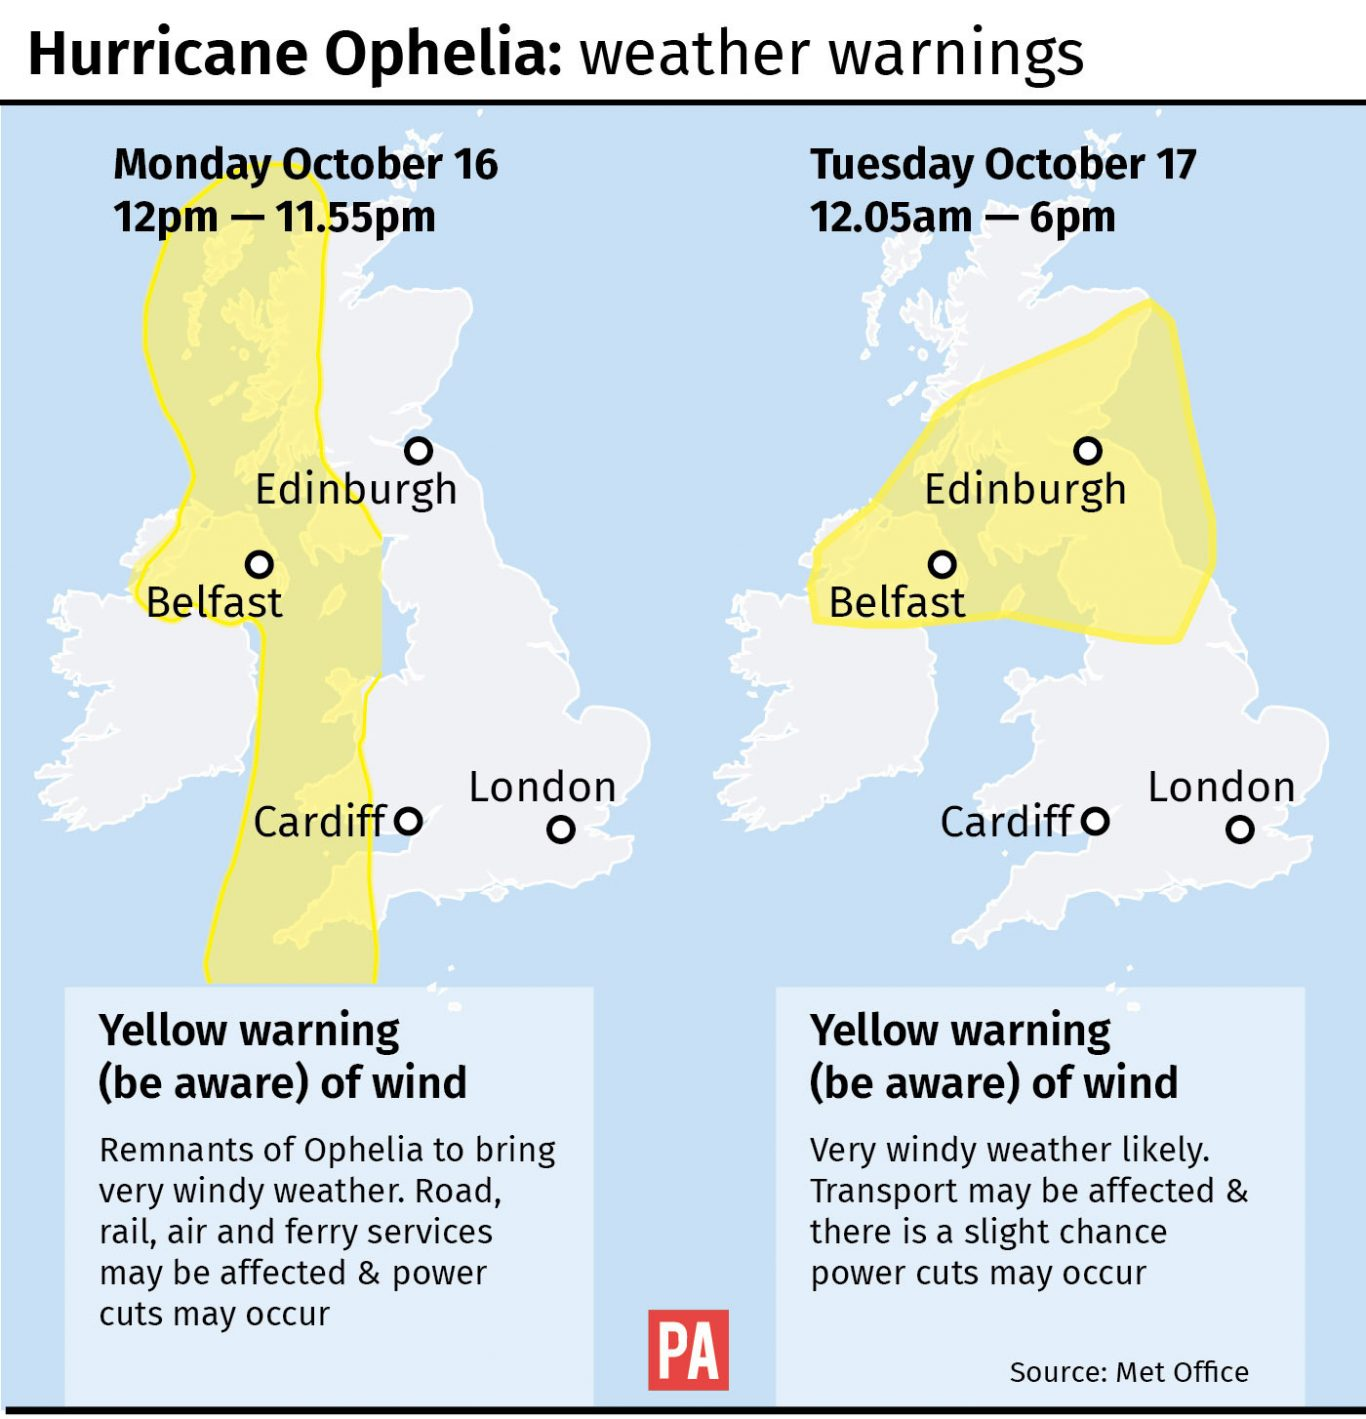 Graphic maps yellow warnings of wind from the Met Office